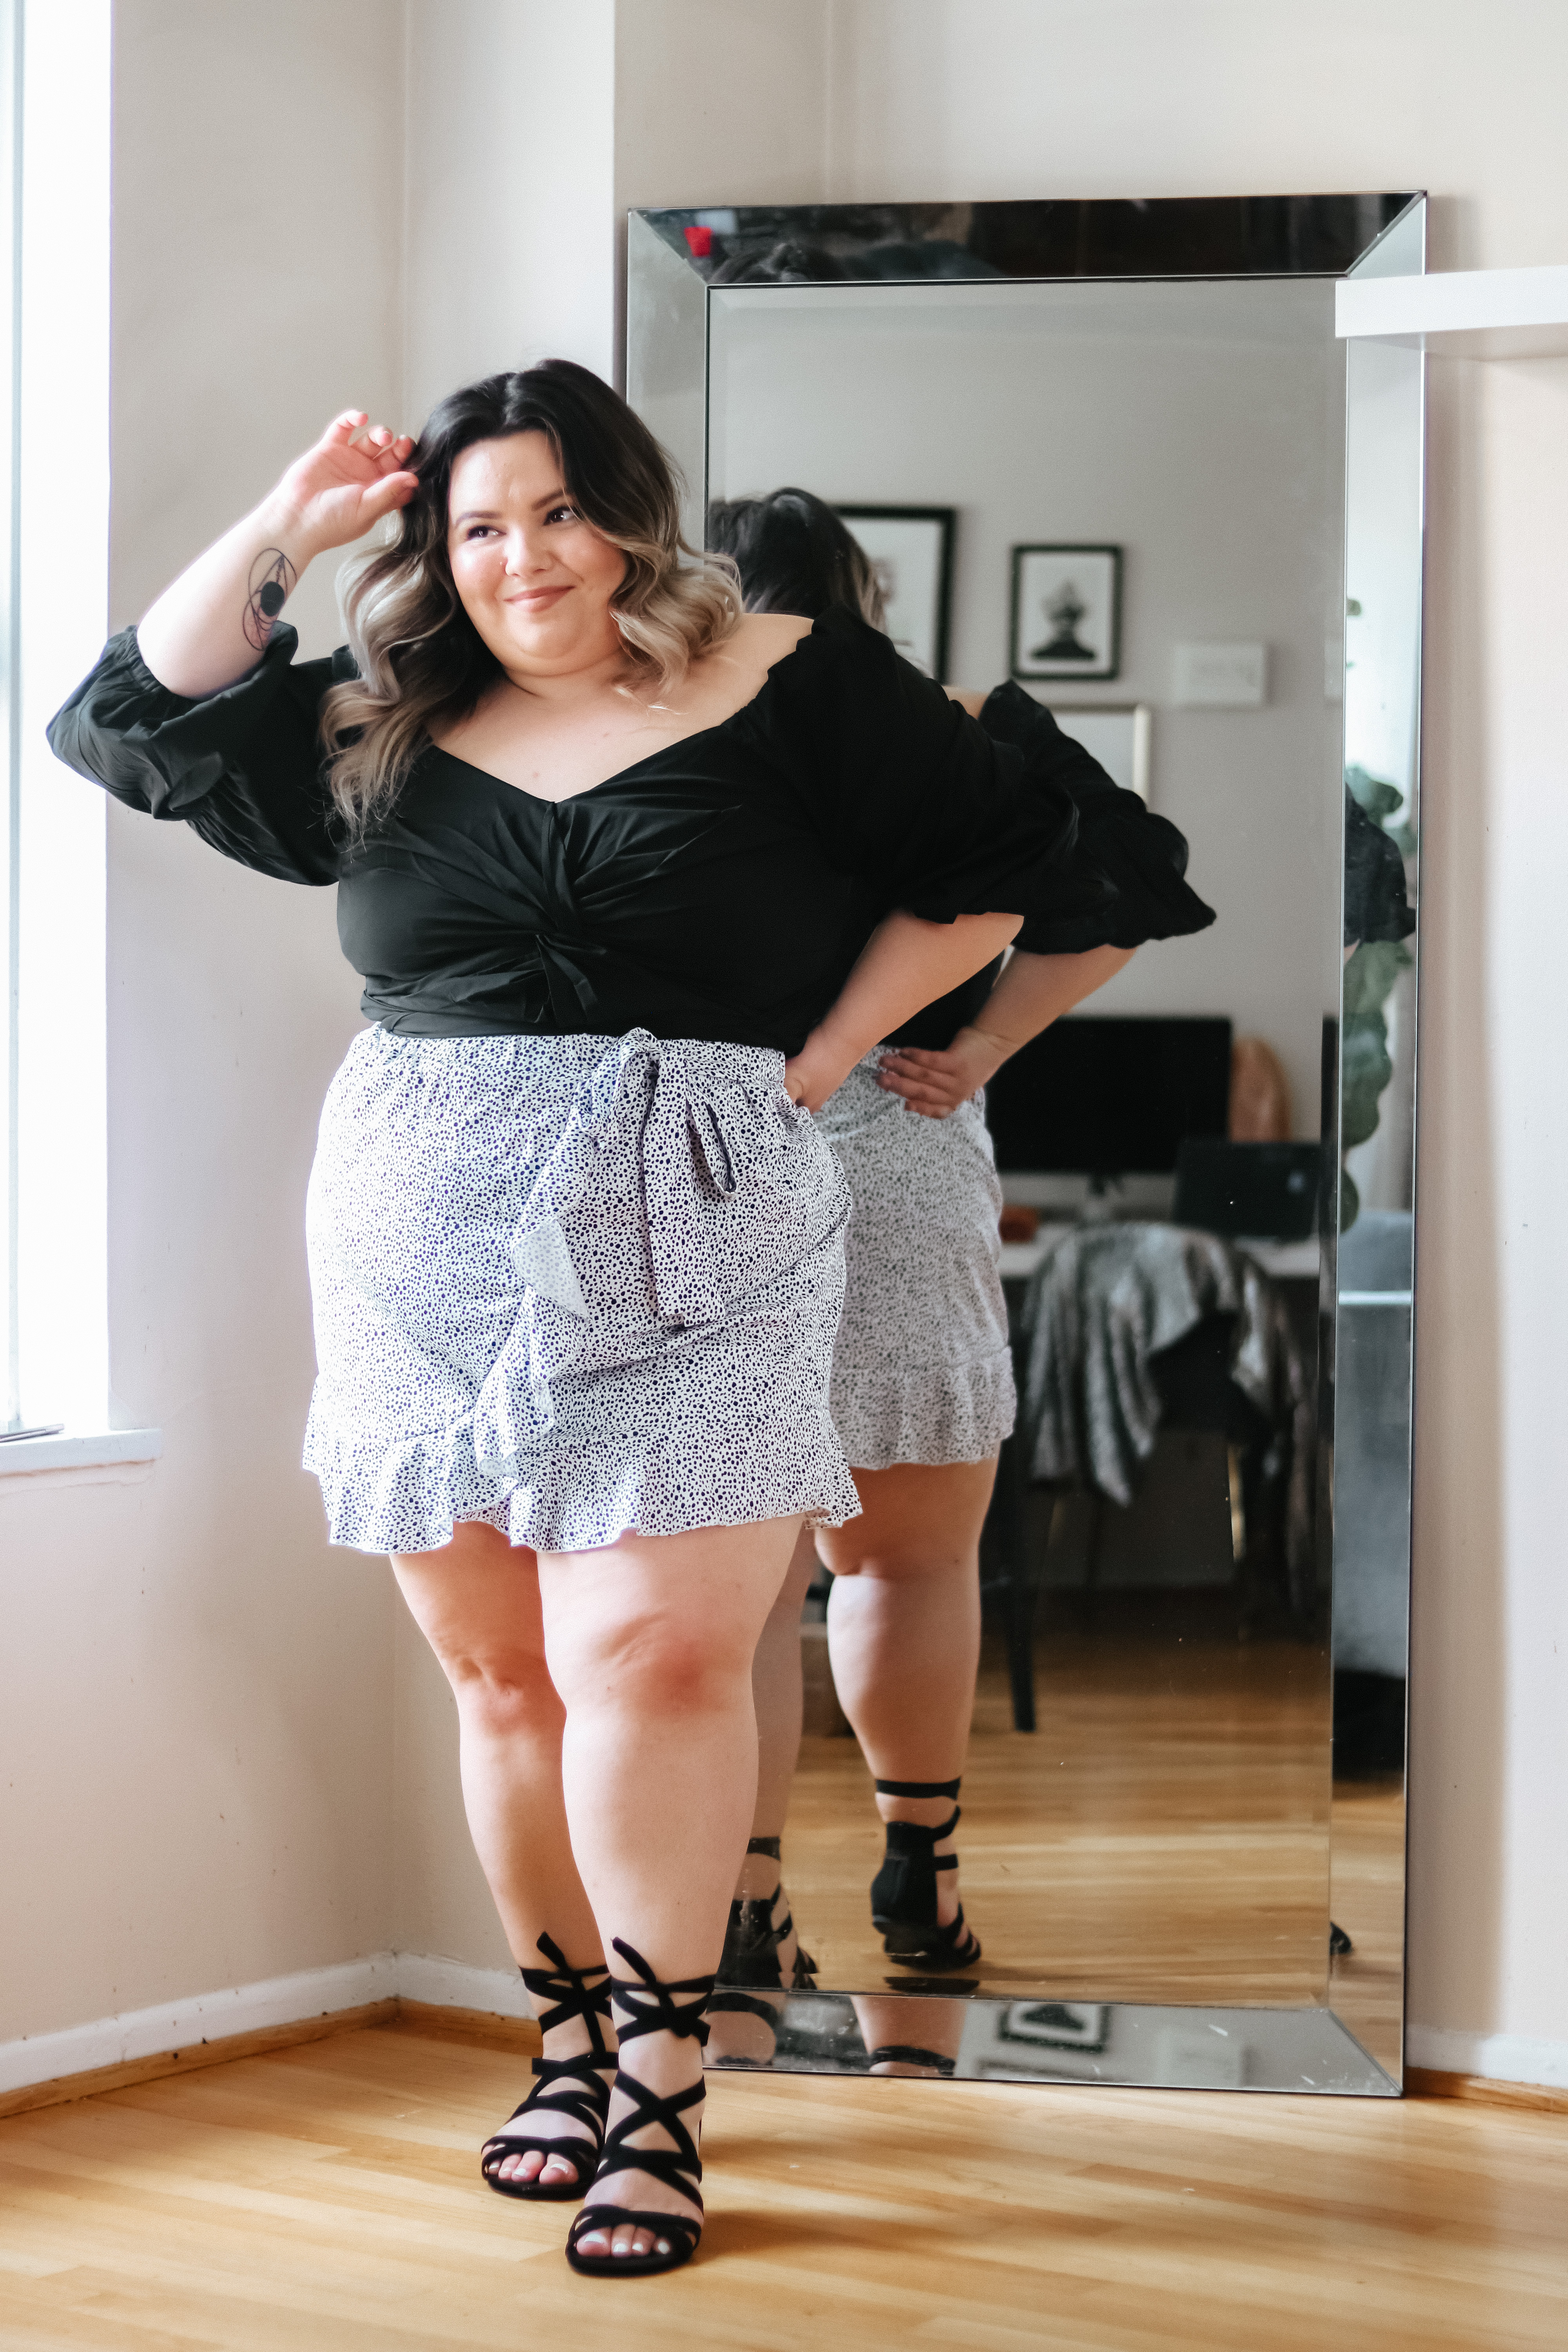 Chicago Plus Size Petite Fashion Blogger and model Natalie Craig, of Natalie in the City, reviews SHEIN's mini skirts